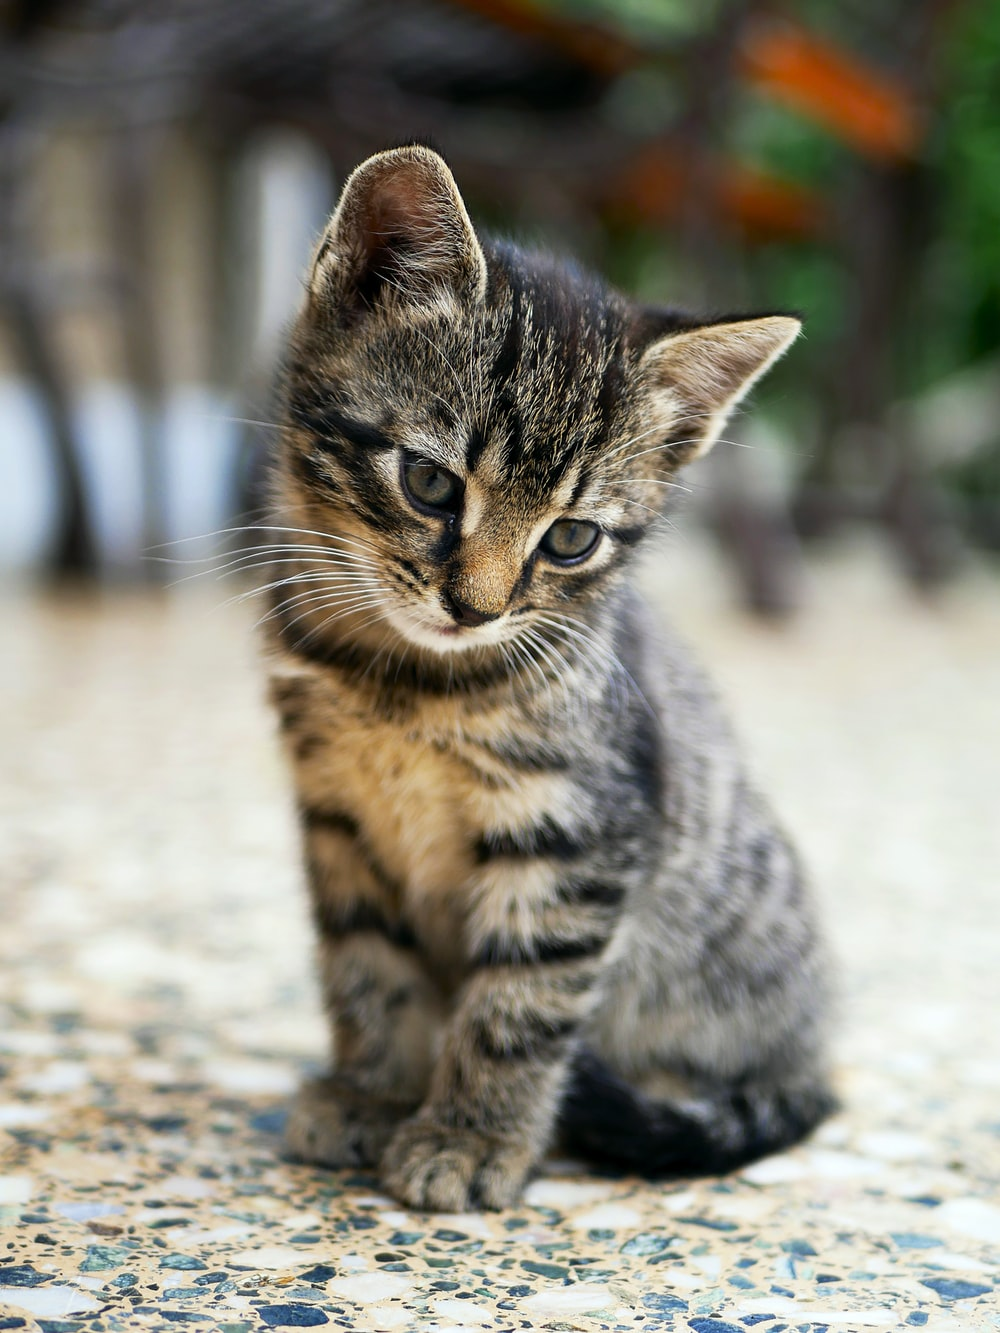 Baby cat pictures download free images on unsplash brown tabby kitten sitting on floor thecheapjerseys Gallery